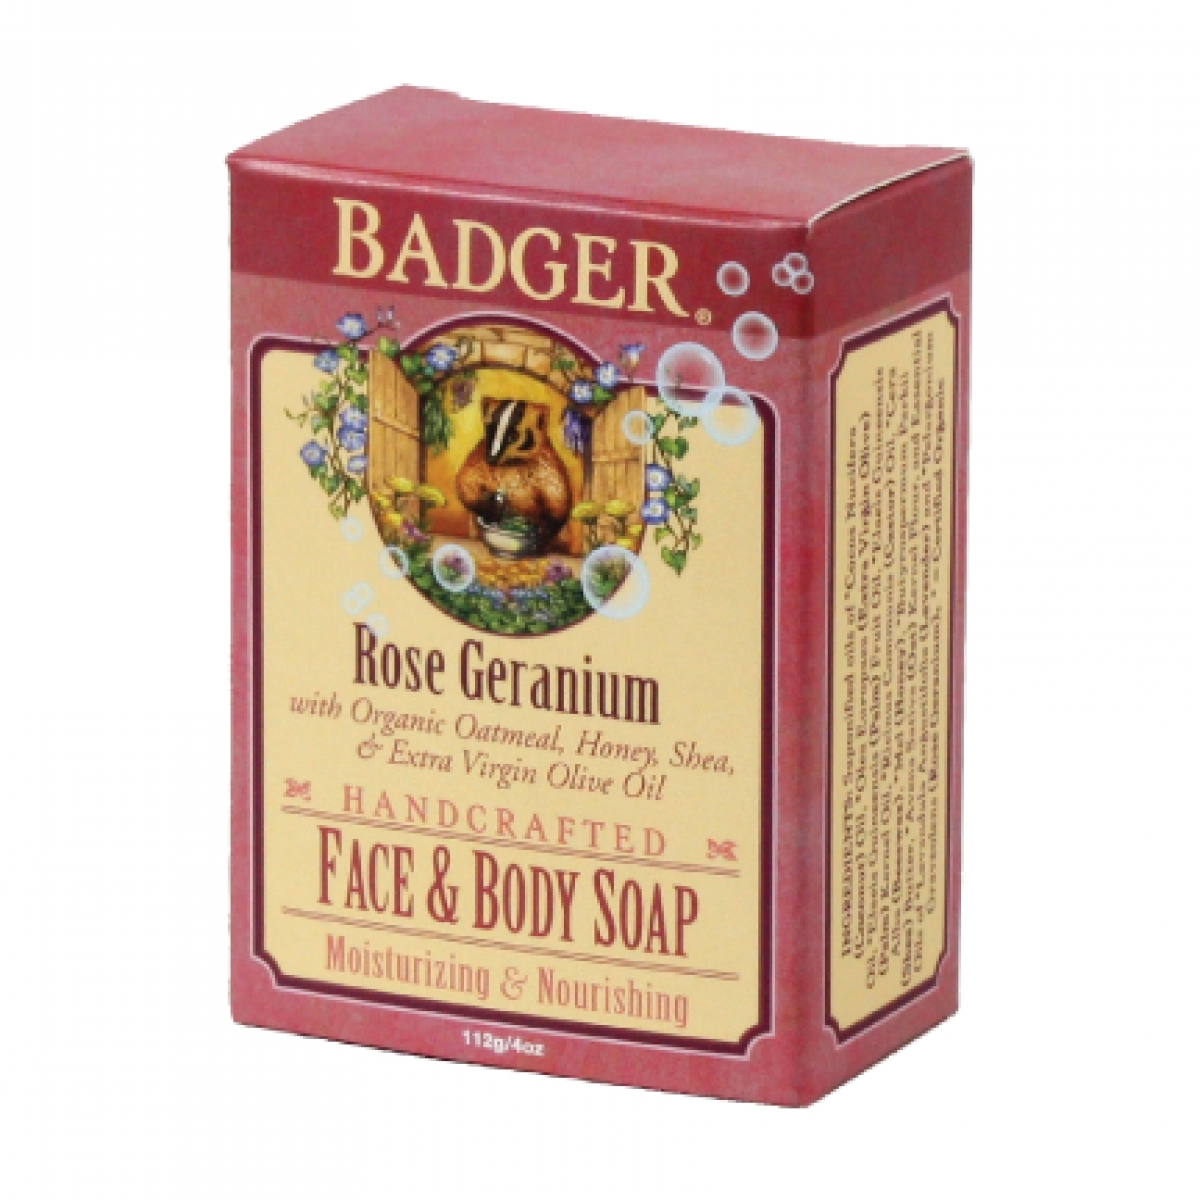 Badger Rose Geranium Face & Body Soap (4oz)